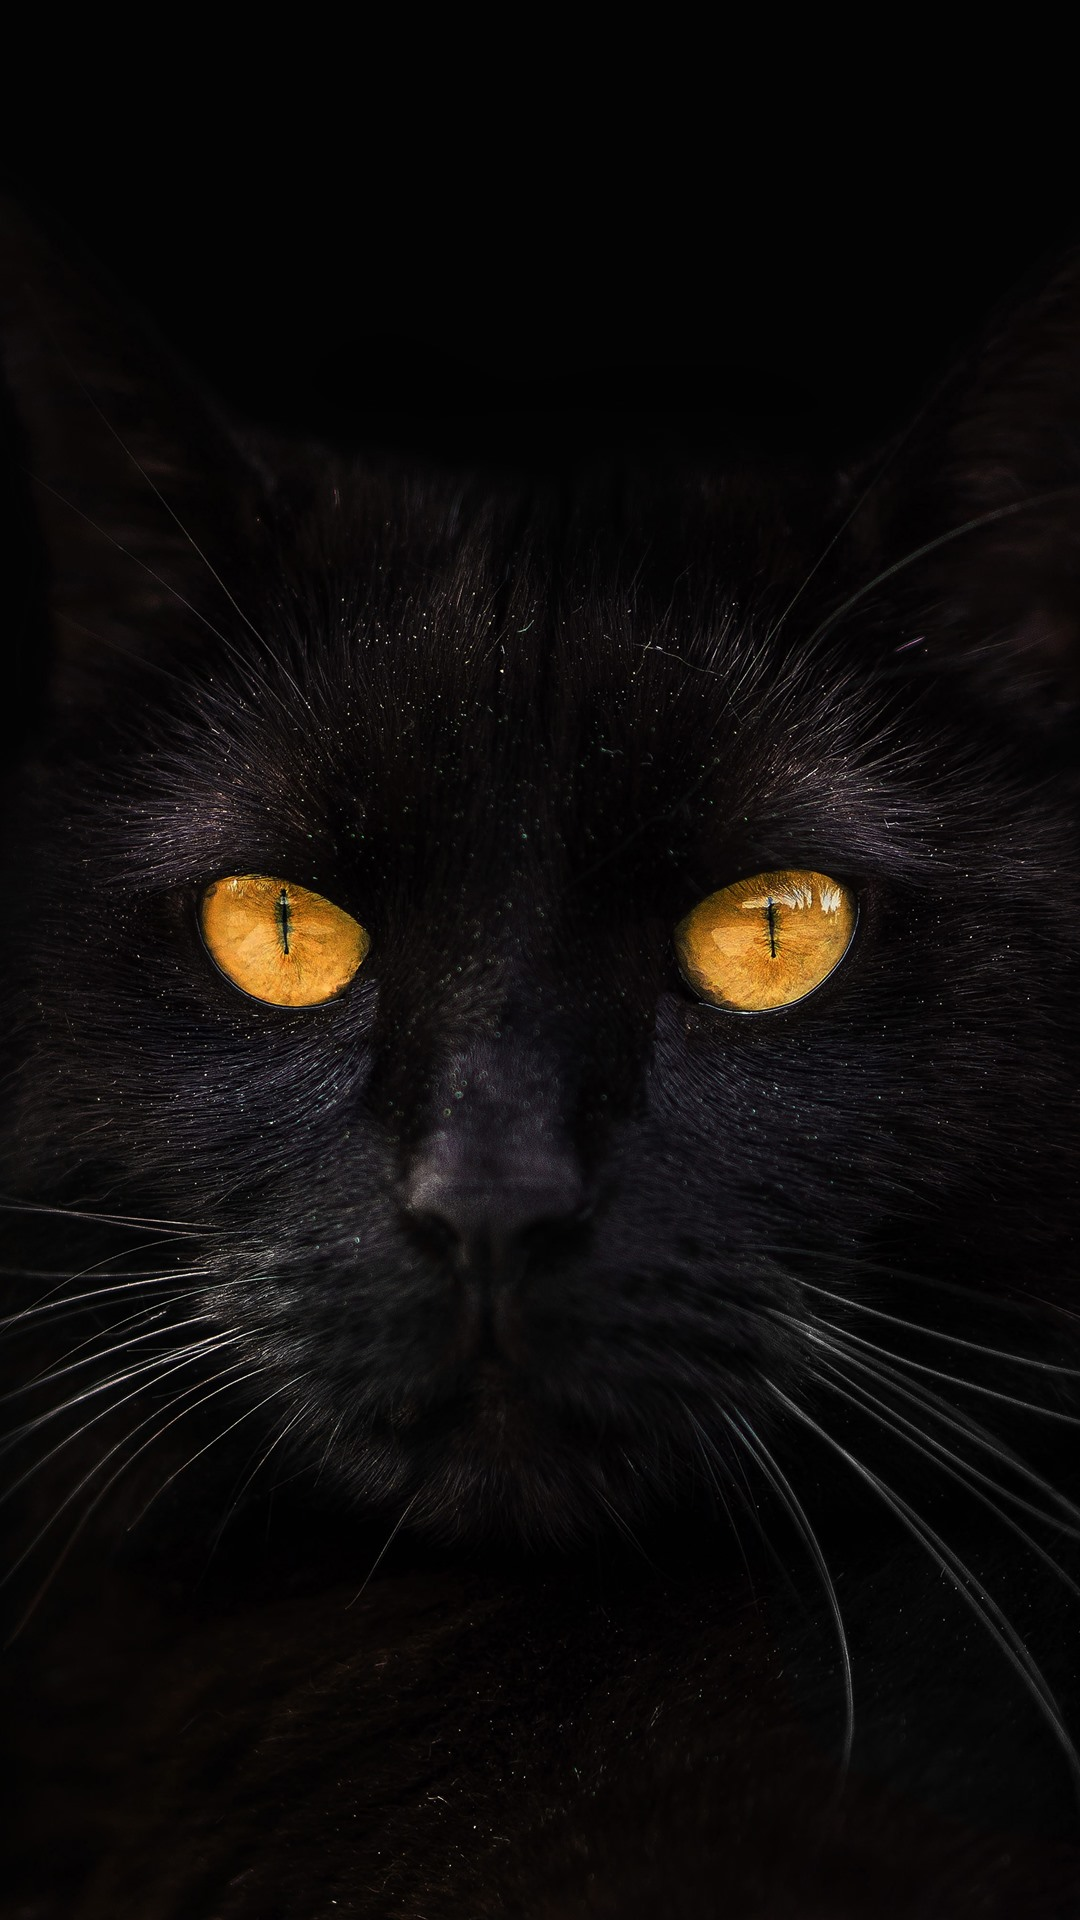 Wallpaper Black Cat Yellow Eyes Darkness 5120x2880 Uhd 5k Picture Image